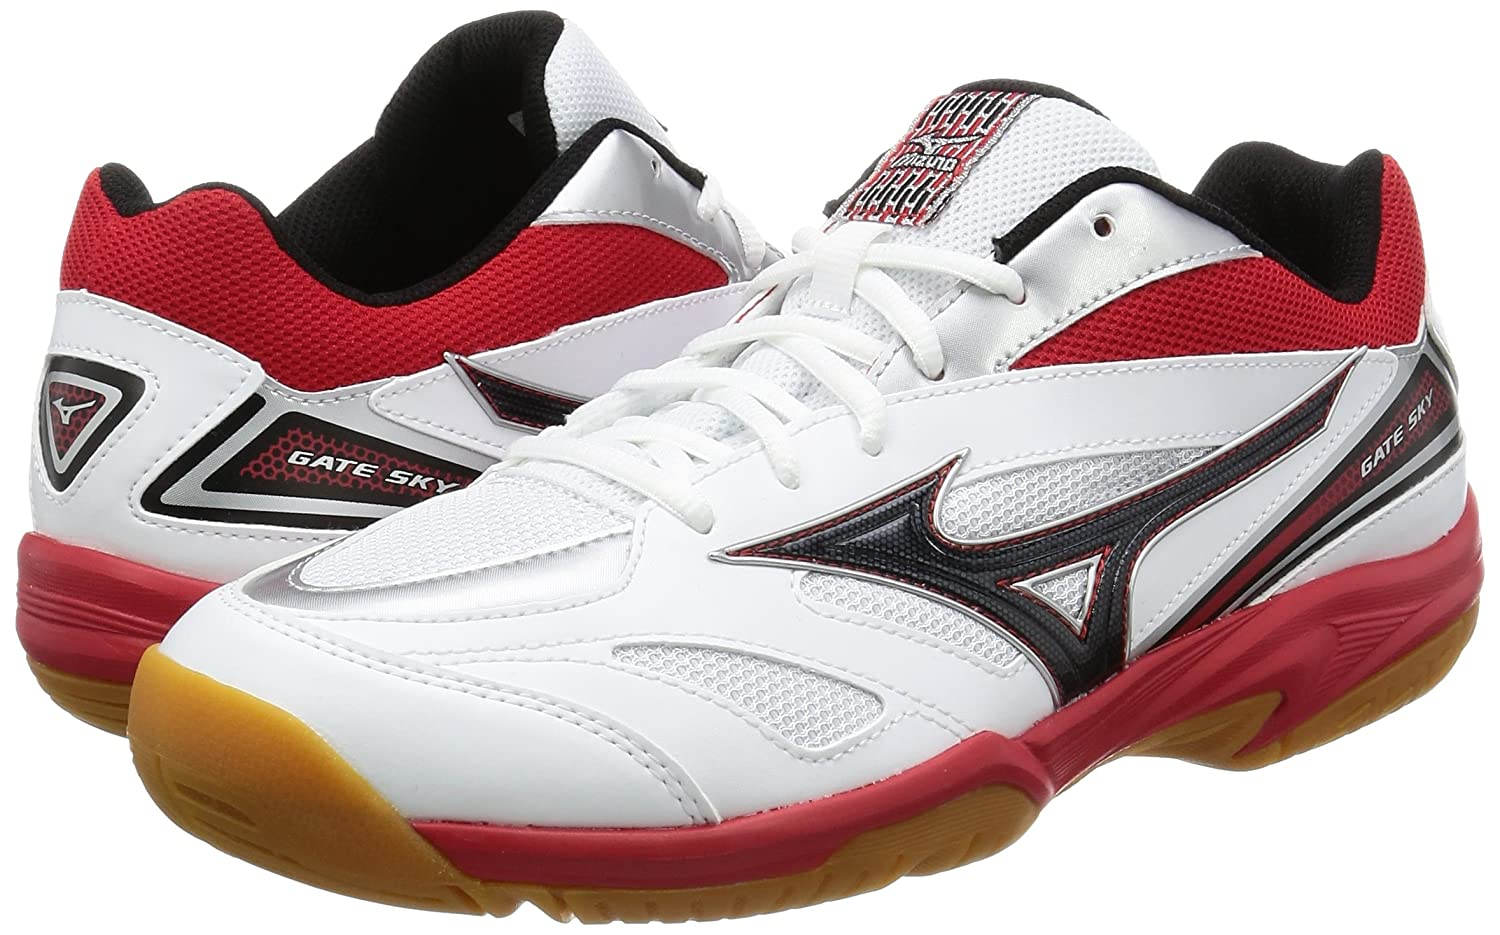 mizuno badminton shoes size 10 original